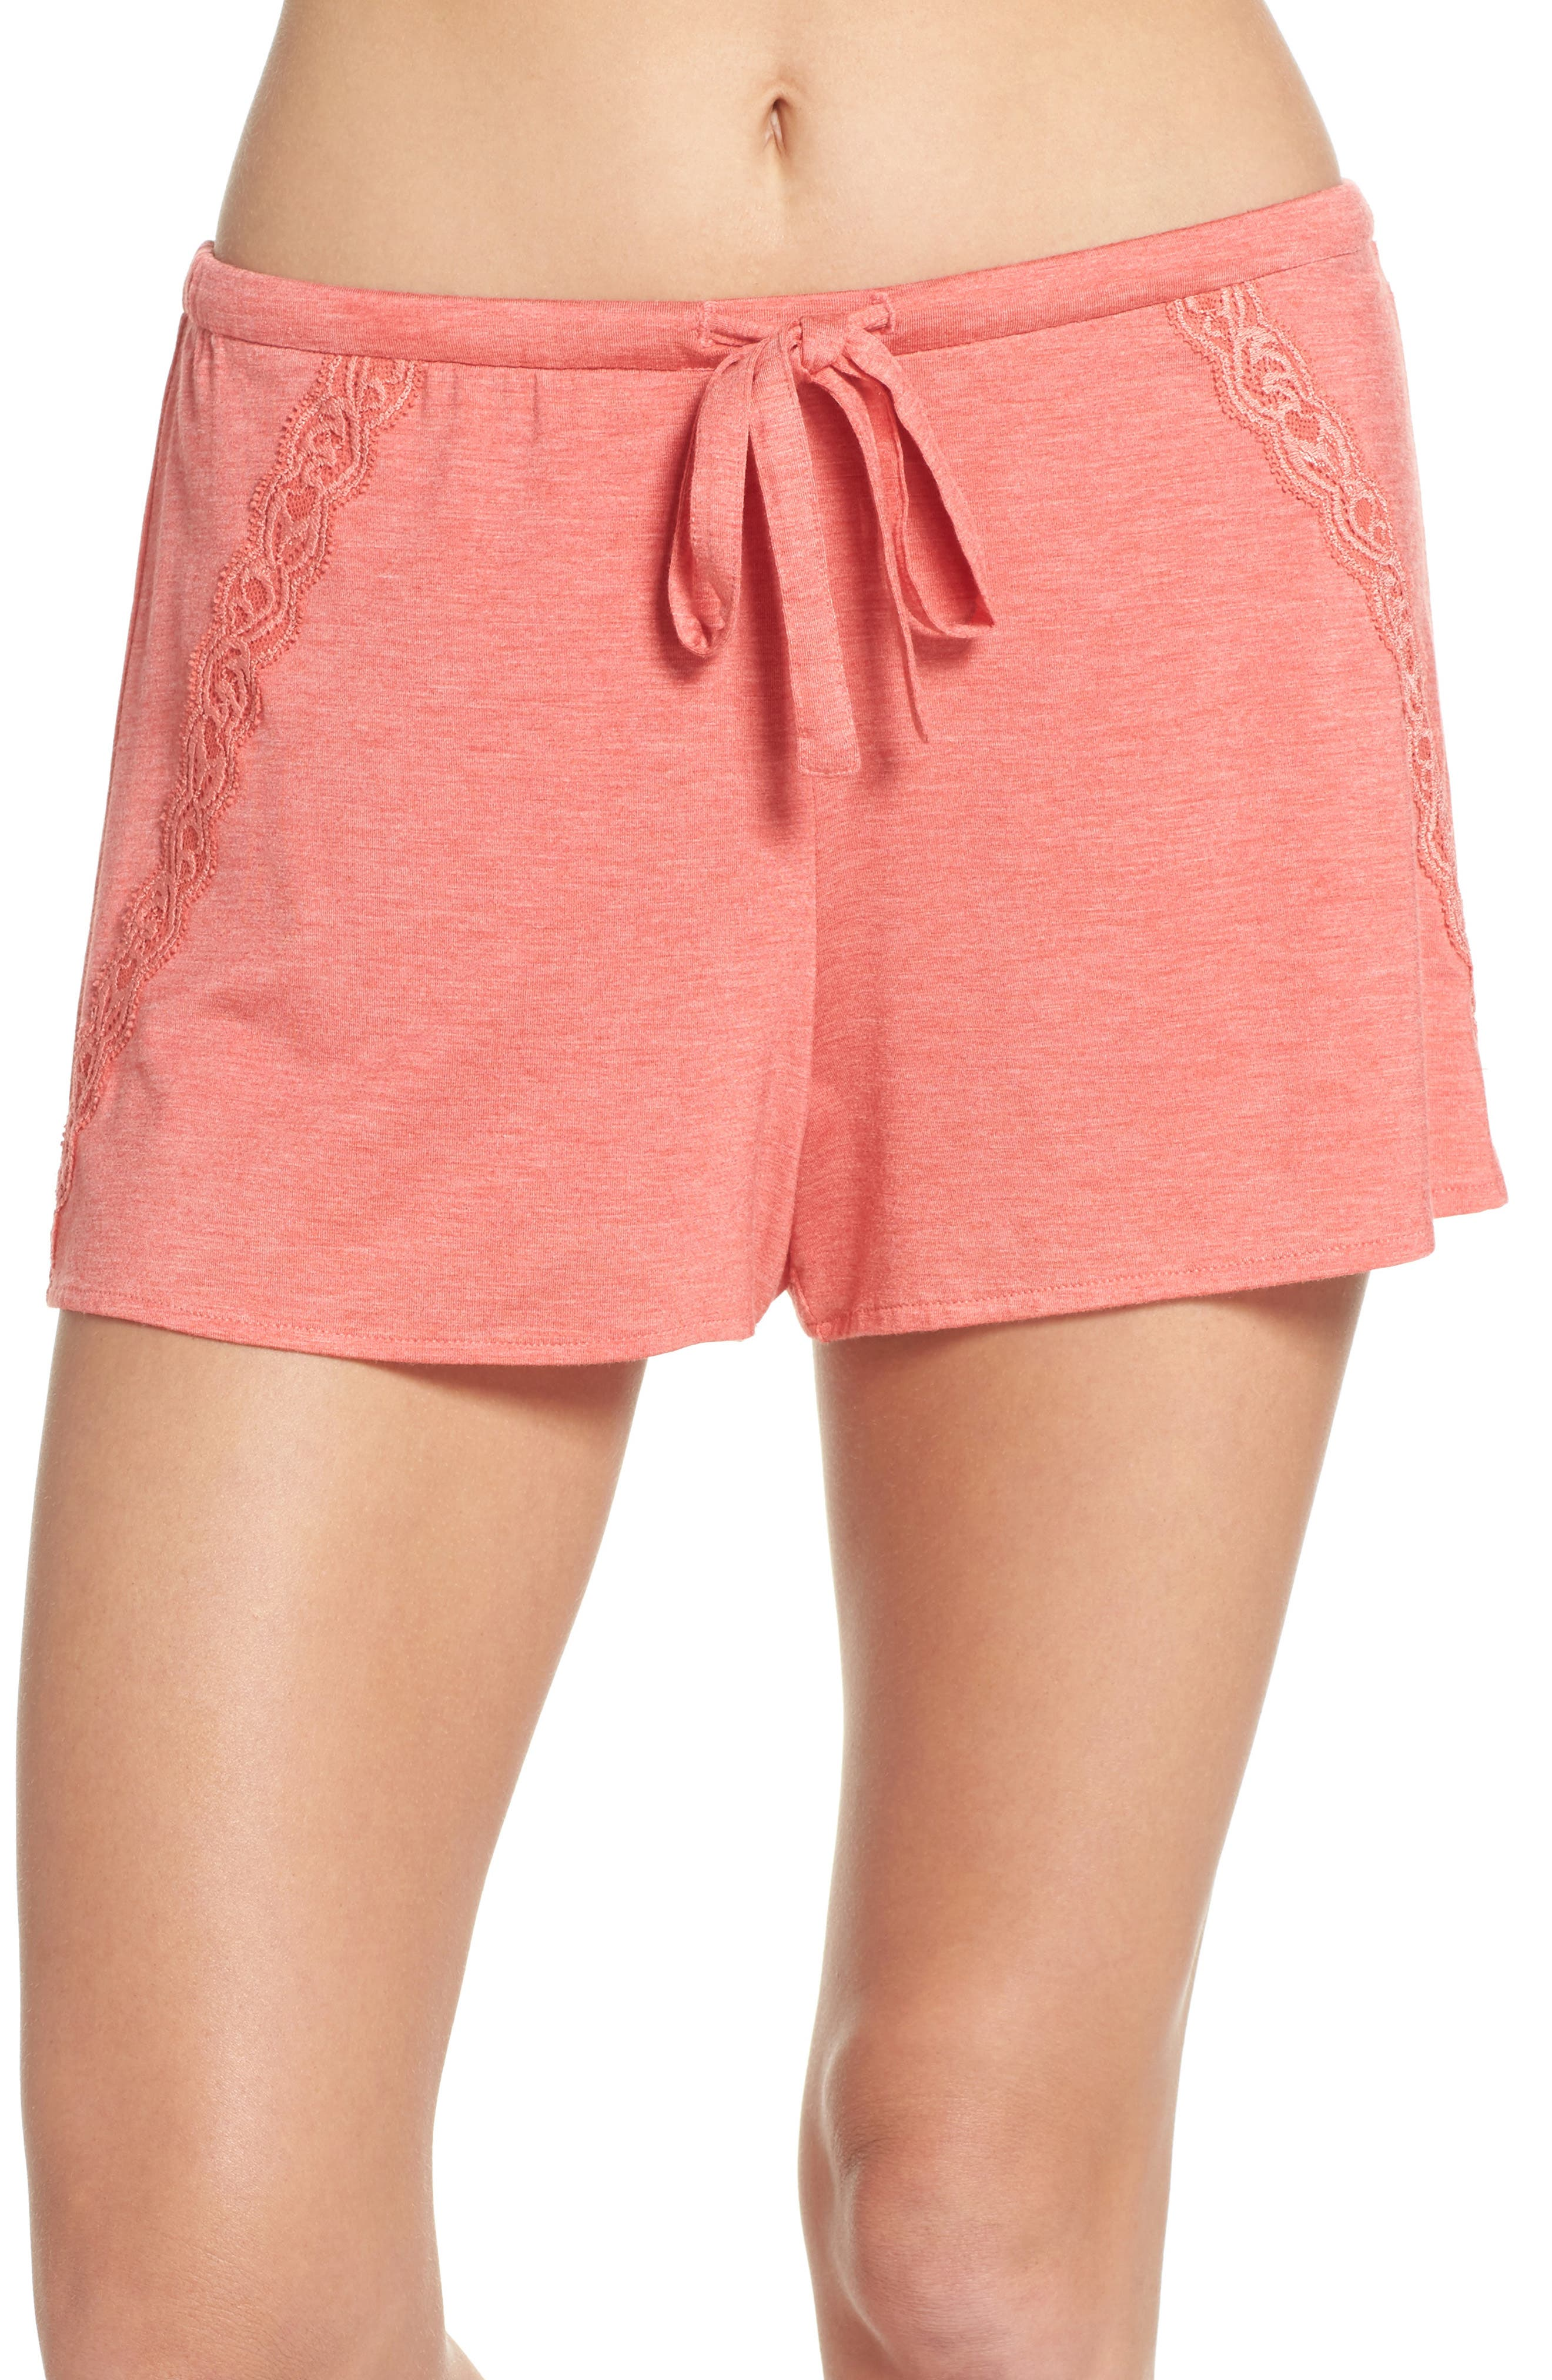 Feathers Essential Pajama Shorts,                             Main thumbnail 2, color,